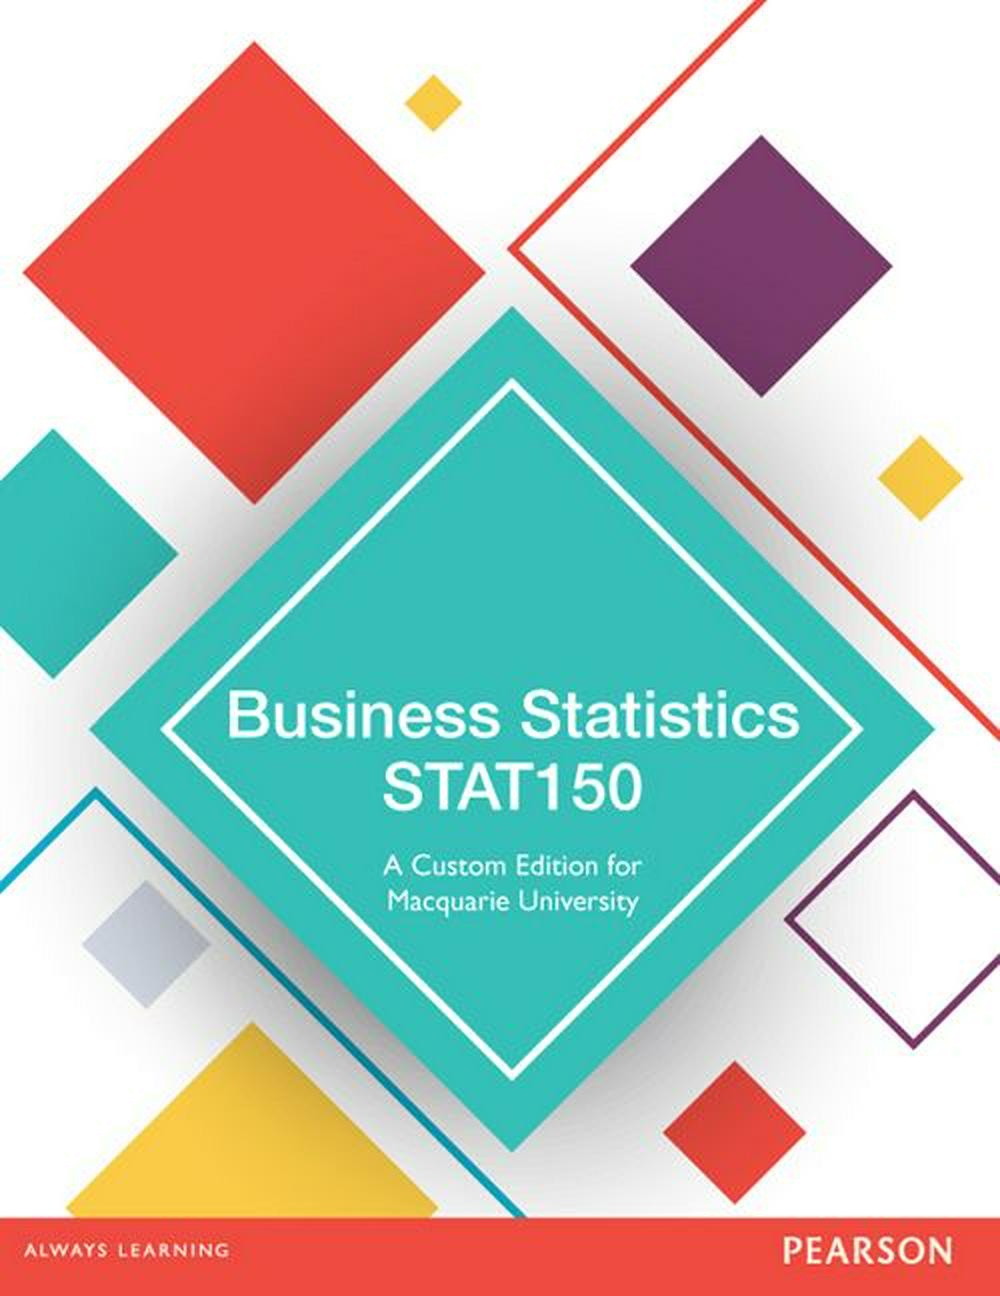 Business Statistics STAT150: A Custom Edition for Macquarie University